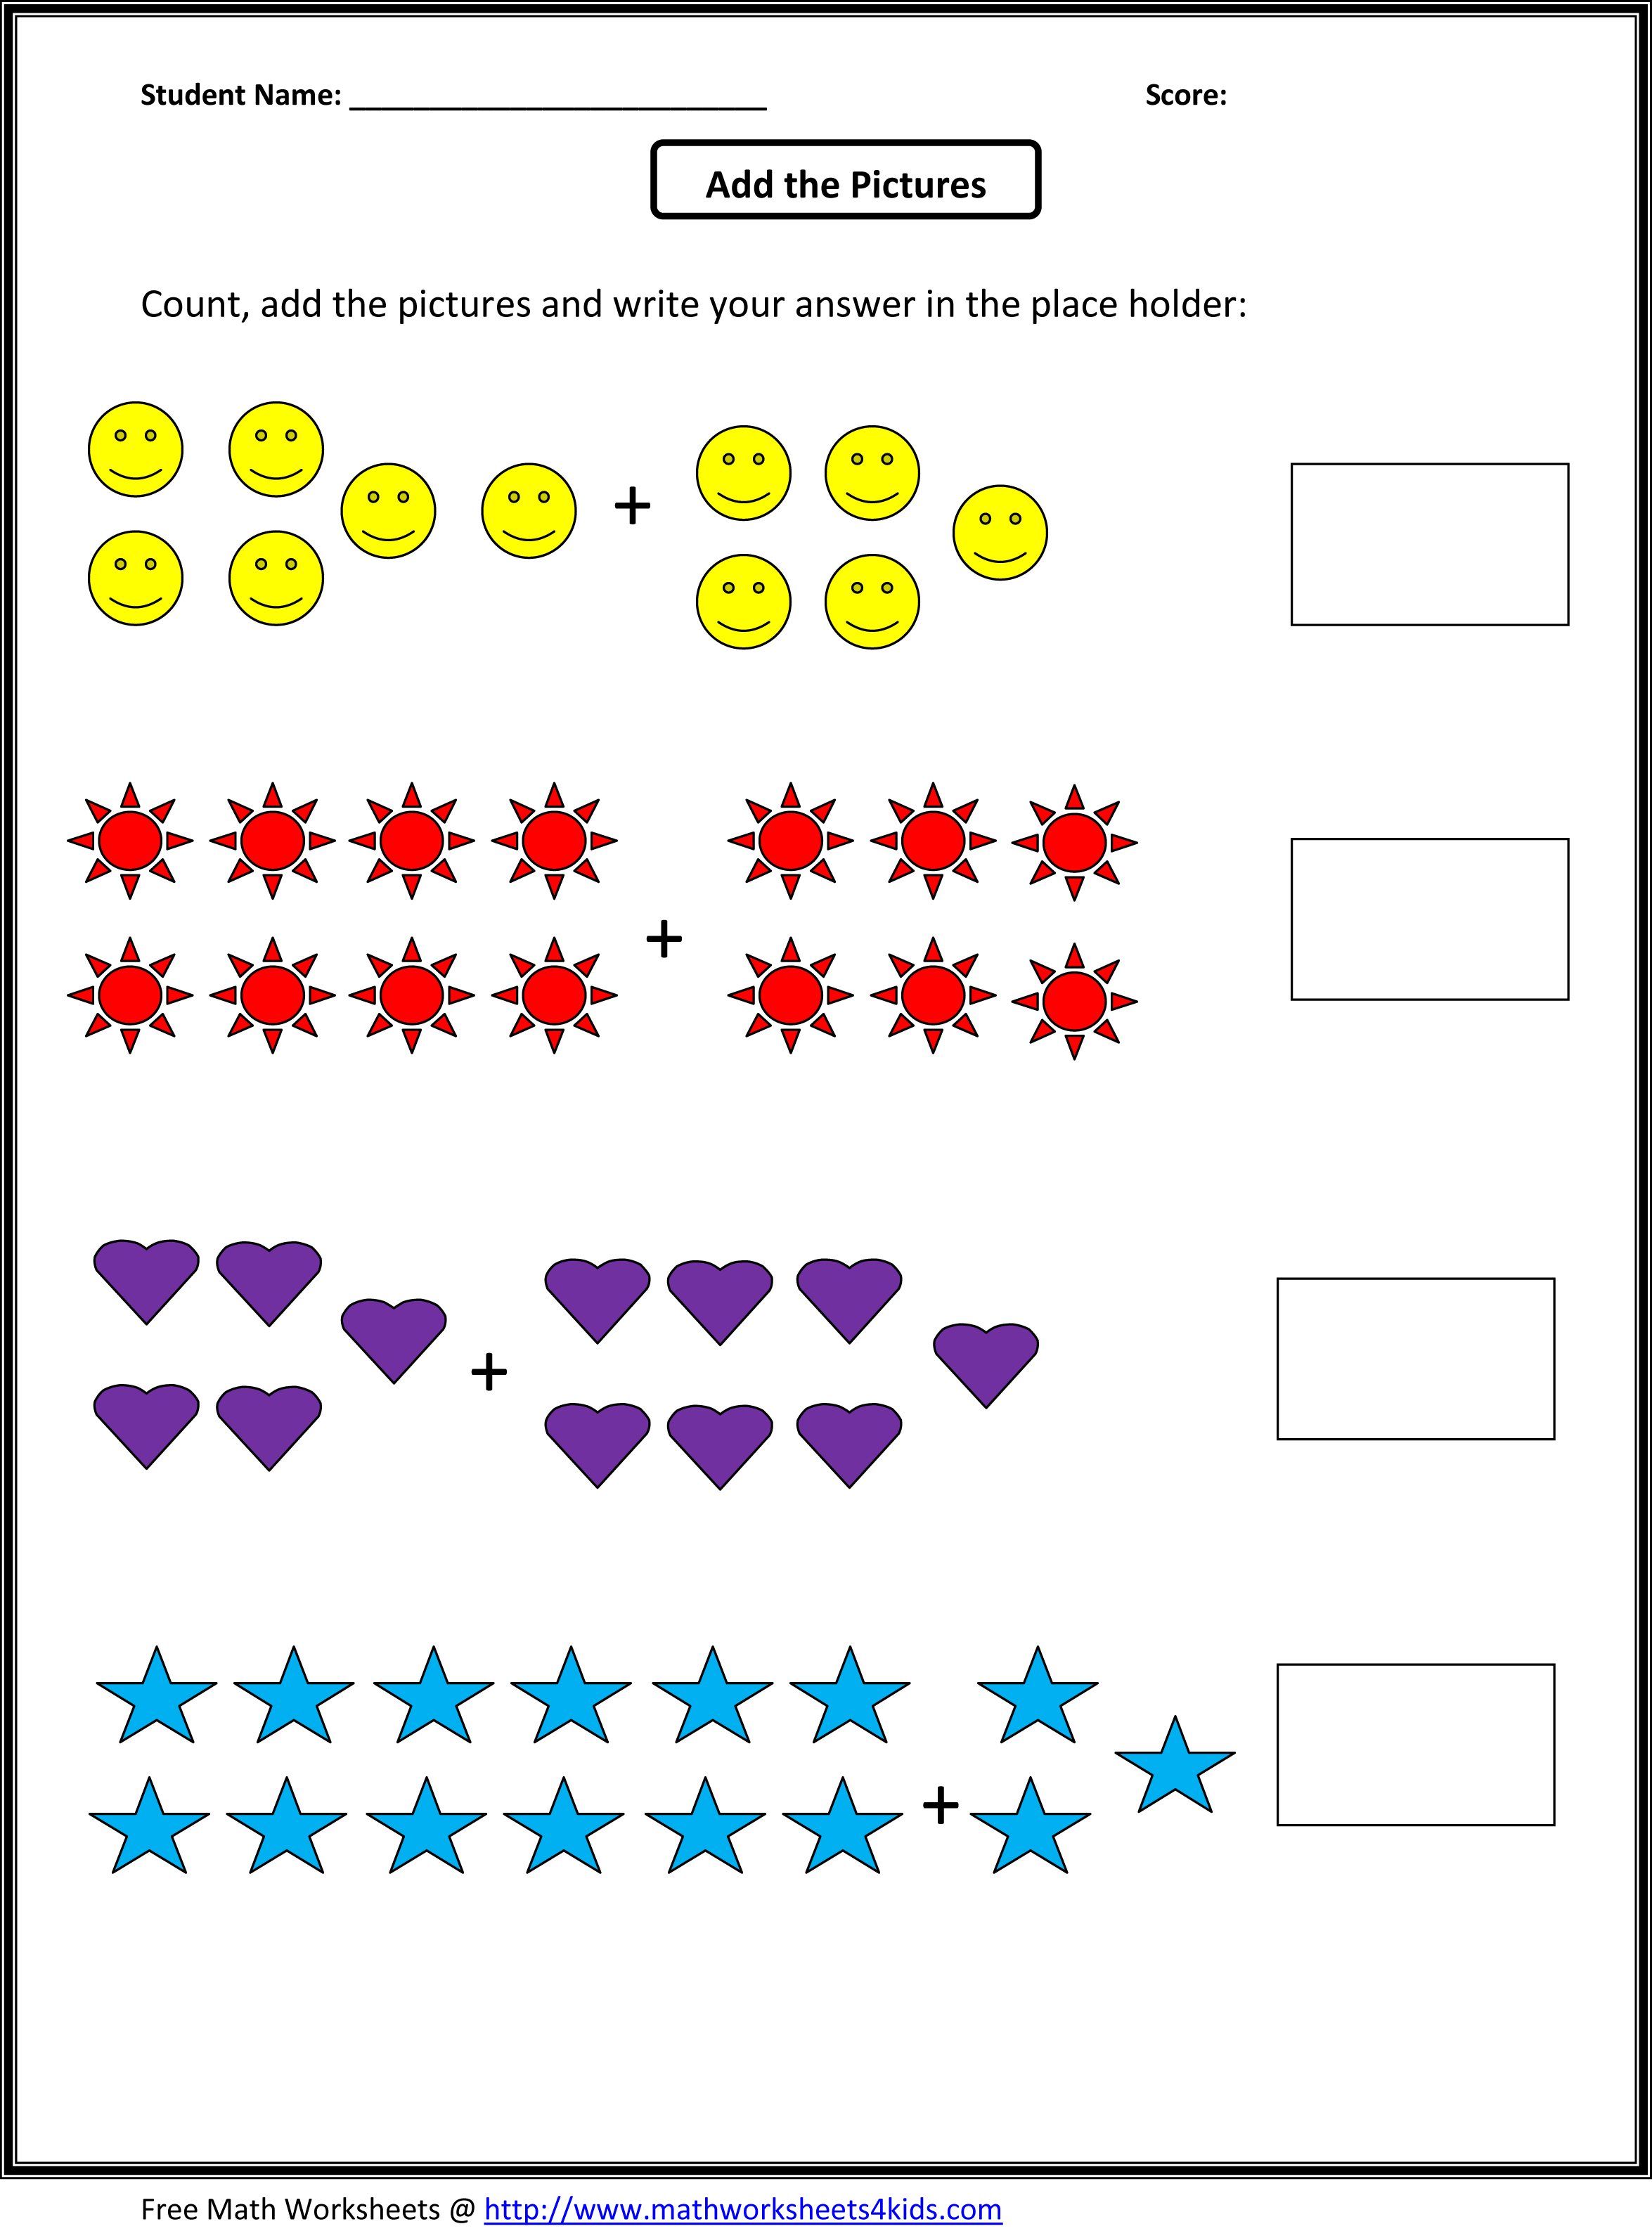 Weirdmailus  Unique Grade  Maths Worksheet  Reocurent With Hot Math Worksheets For St Grade Free  Reocurent With Delightful Volume Cone Worksheet Also Fractions Worksheet Pdf In Addition Metric Measurements Worksheet And Reading Worksheets Th Grade As Well As Mythology Worksheets Additionally Family Life Worksheet From Reocurentcom With Weirdmailus  Hot Grade  Maths Worksheet  Reocurent With Delightful Math Worksheets For St Grade Free  Reocurent And Unique Volume Cone Worksheet Also Fractions Worksheet Pdf In Addition Metric Measurements Worksheet From Reocurentcom